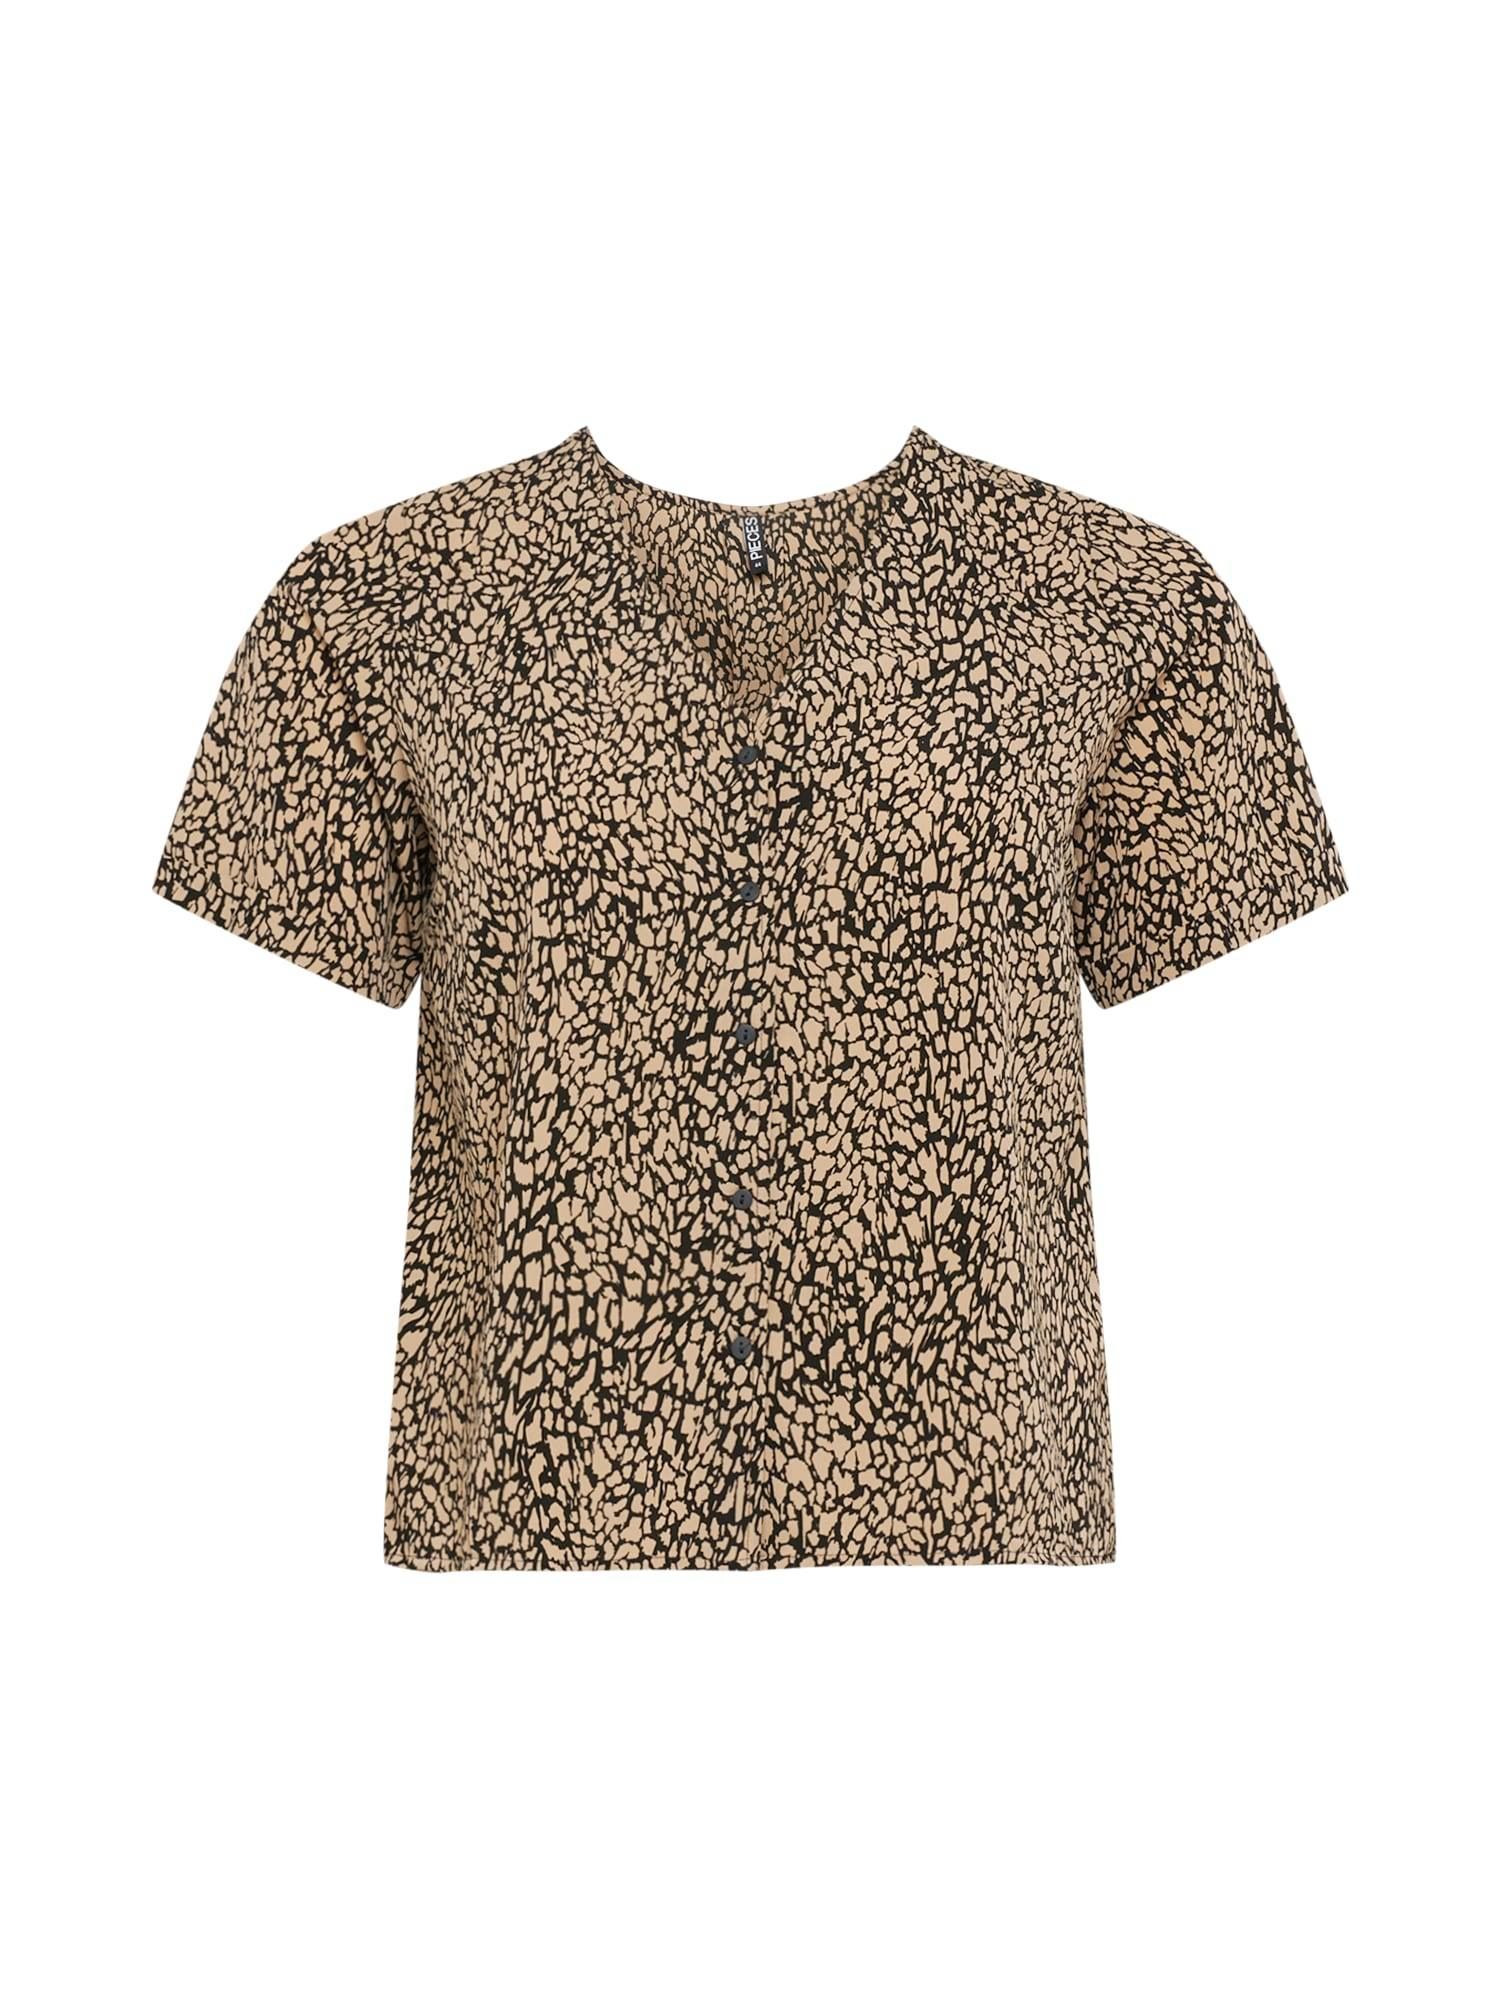 PIECES (Curve) T-shirt 'GILBERTA'  - Noir - Taille: 50 - female